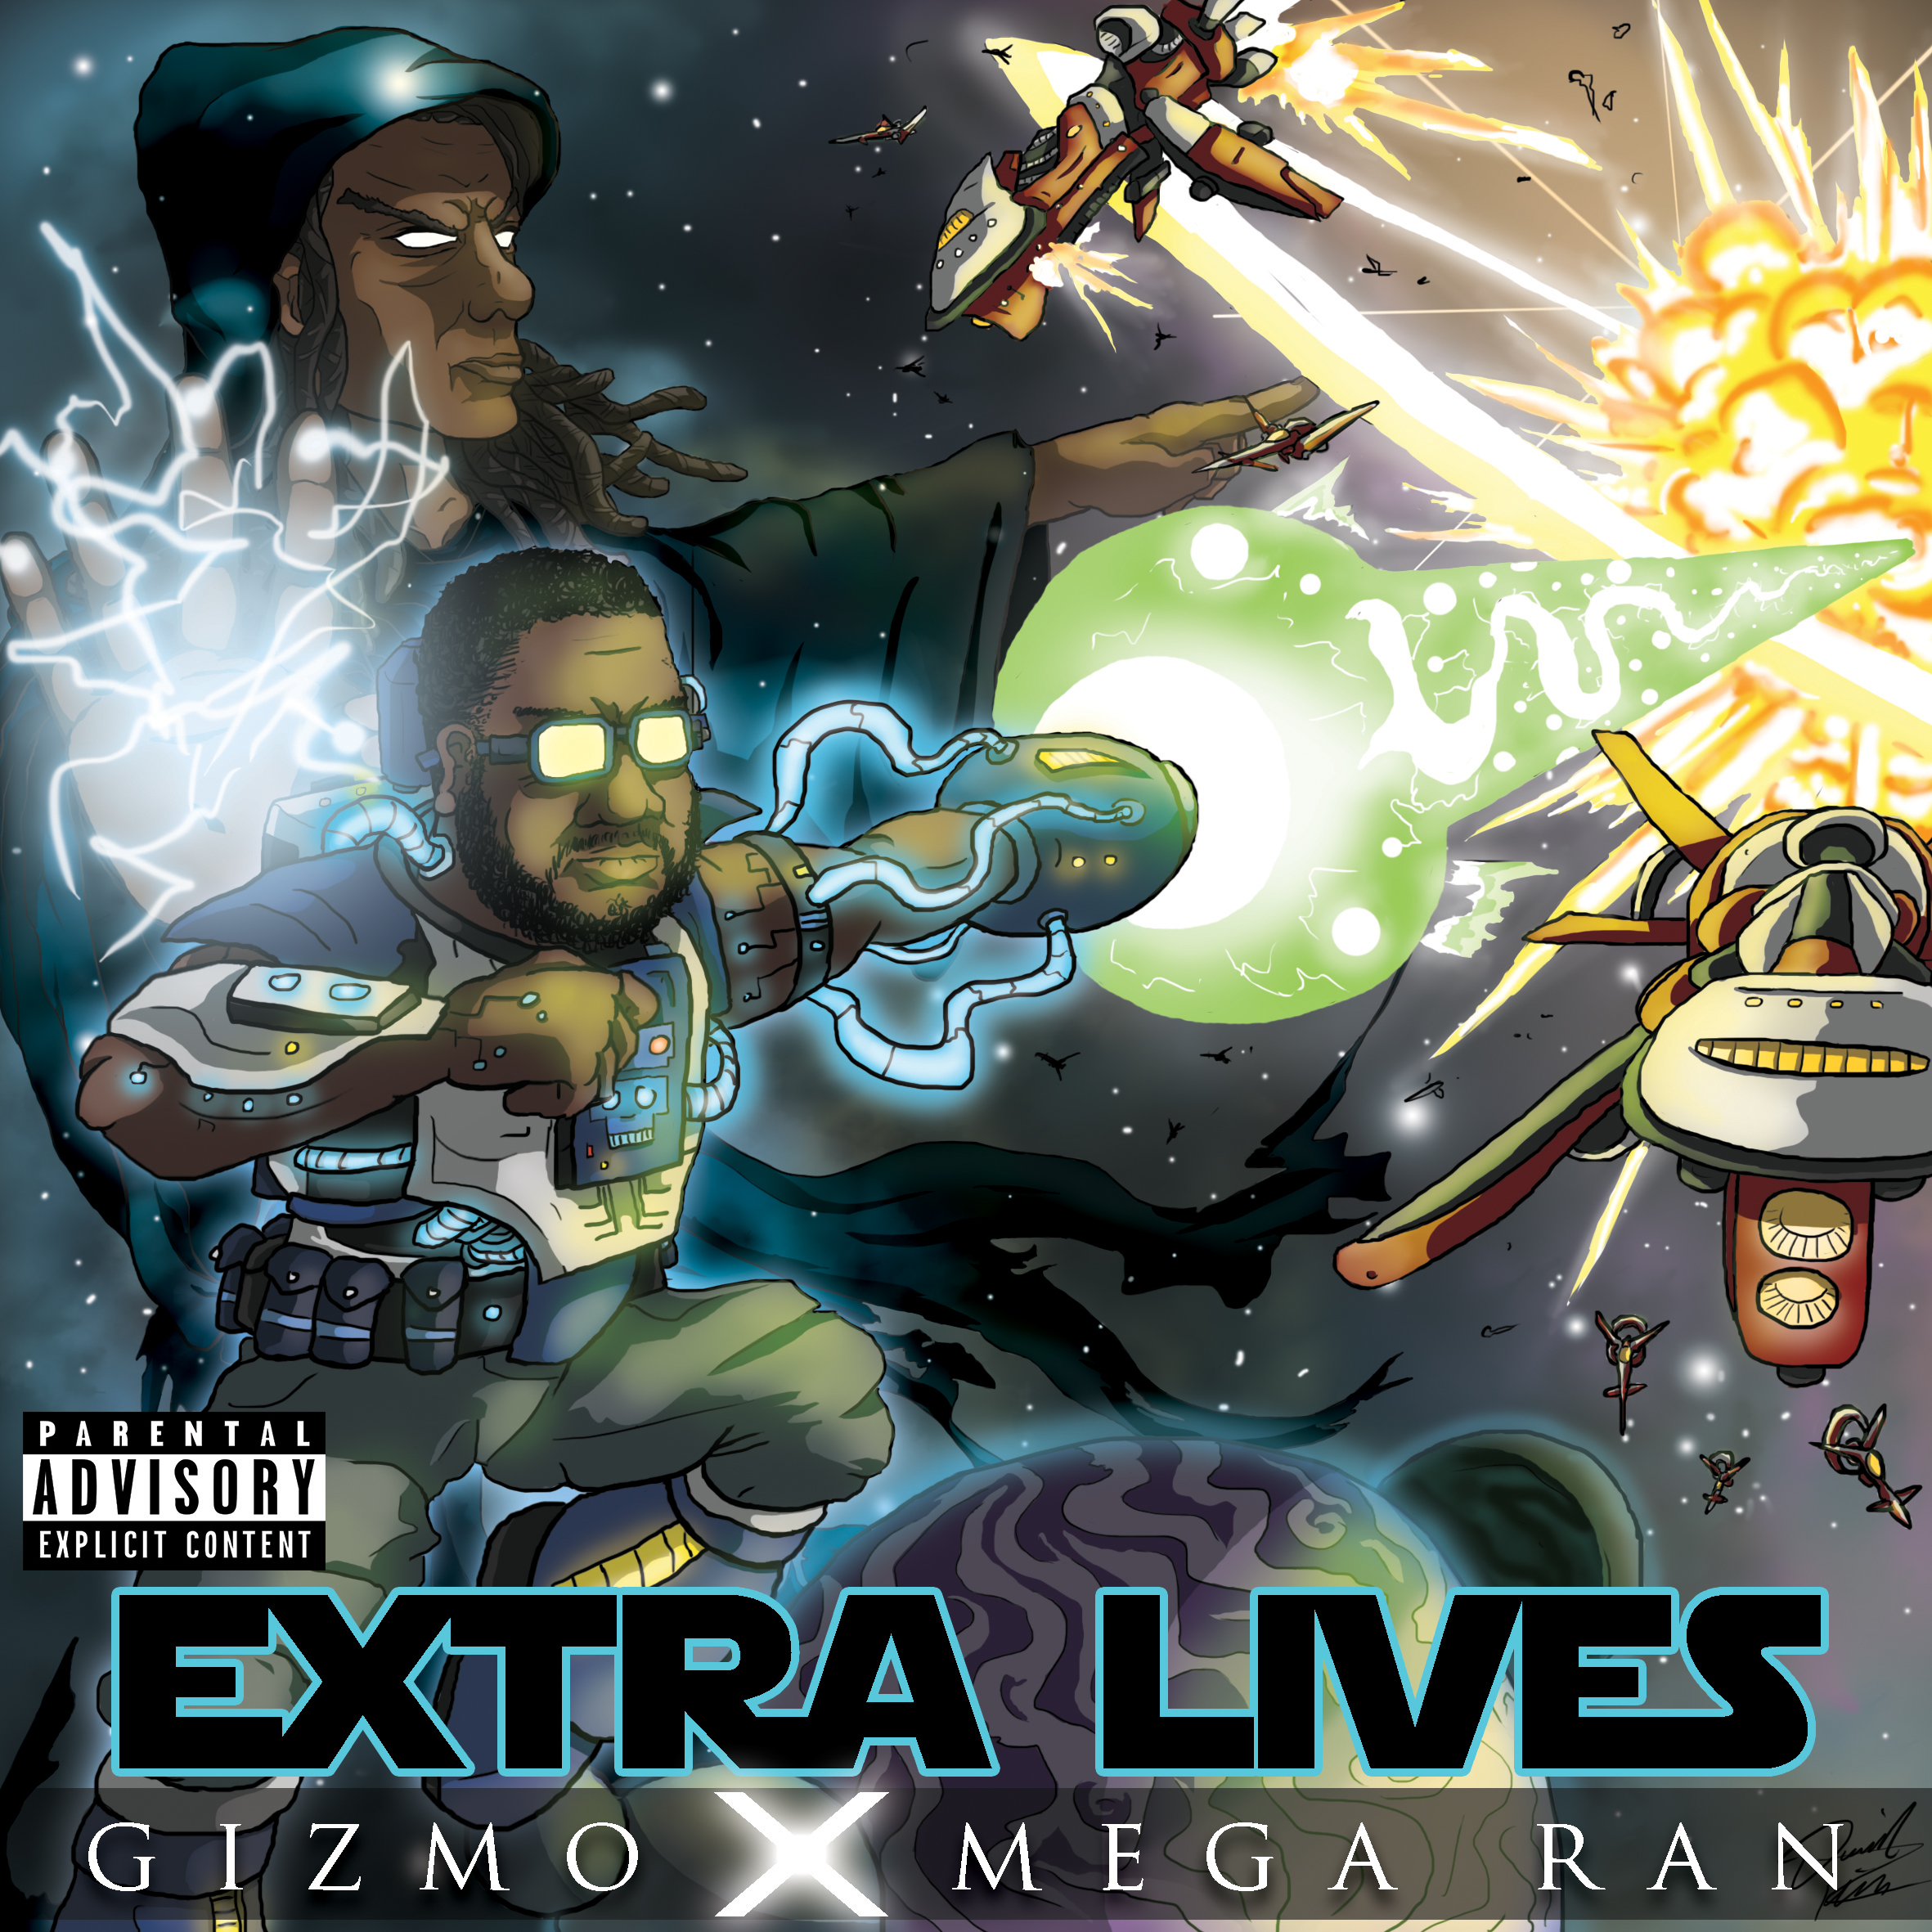 EXTRA LIVES By Gizmo ft. Mega Ran  was my first time working with this client, but i couldn't have asked for a funner brief; Star Wars themed epic space battle!